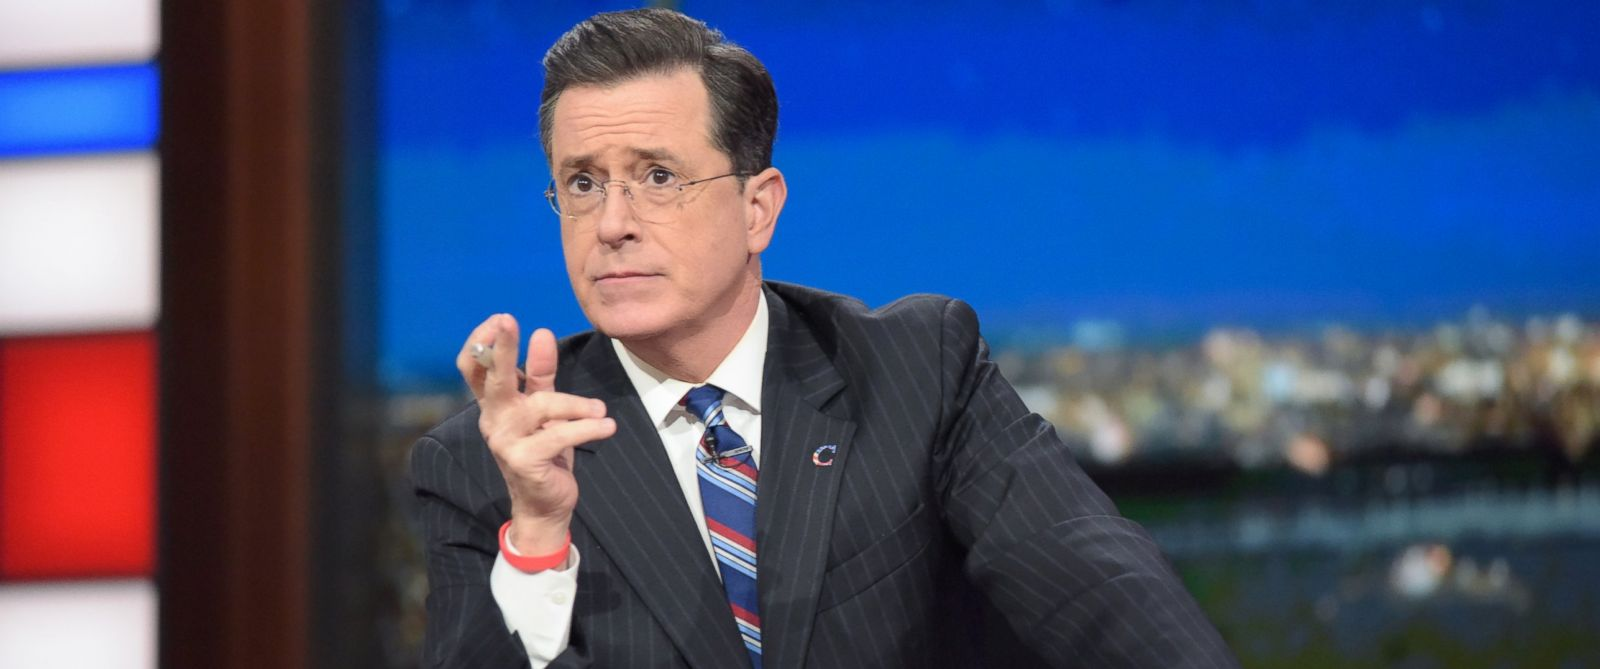 PHOTO: Stephen Colbert is pictured on The Late Show with Stephen Colbert in New York City, Jan. 19, 2017.